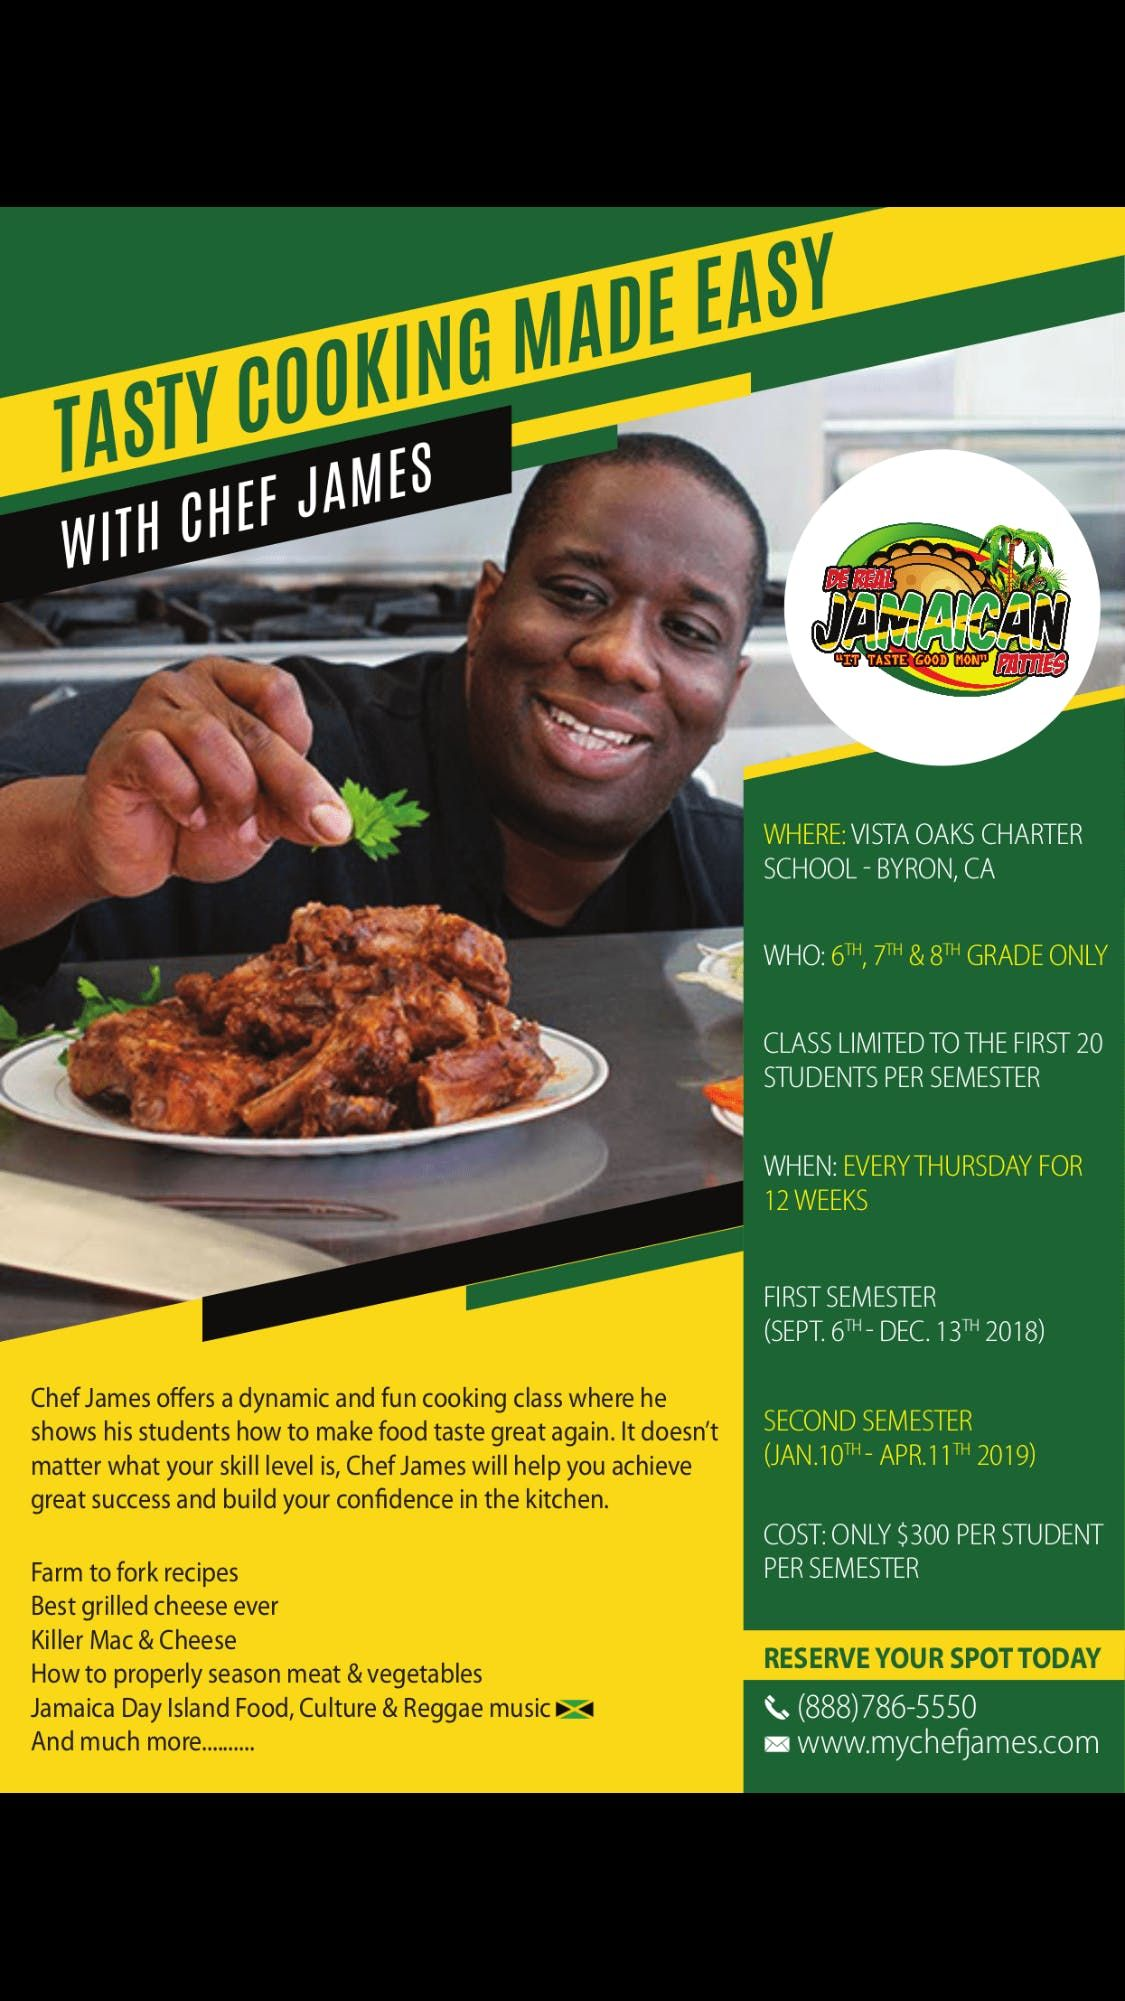 Tasty Cooking Made Easy With Chef James